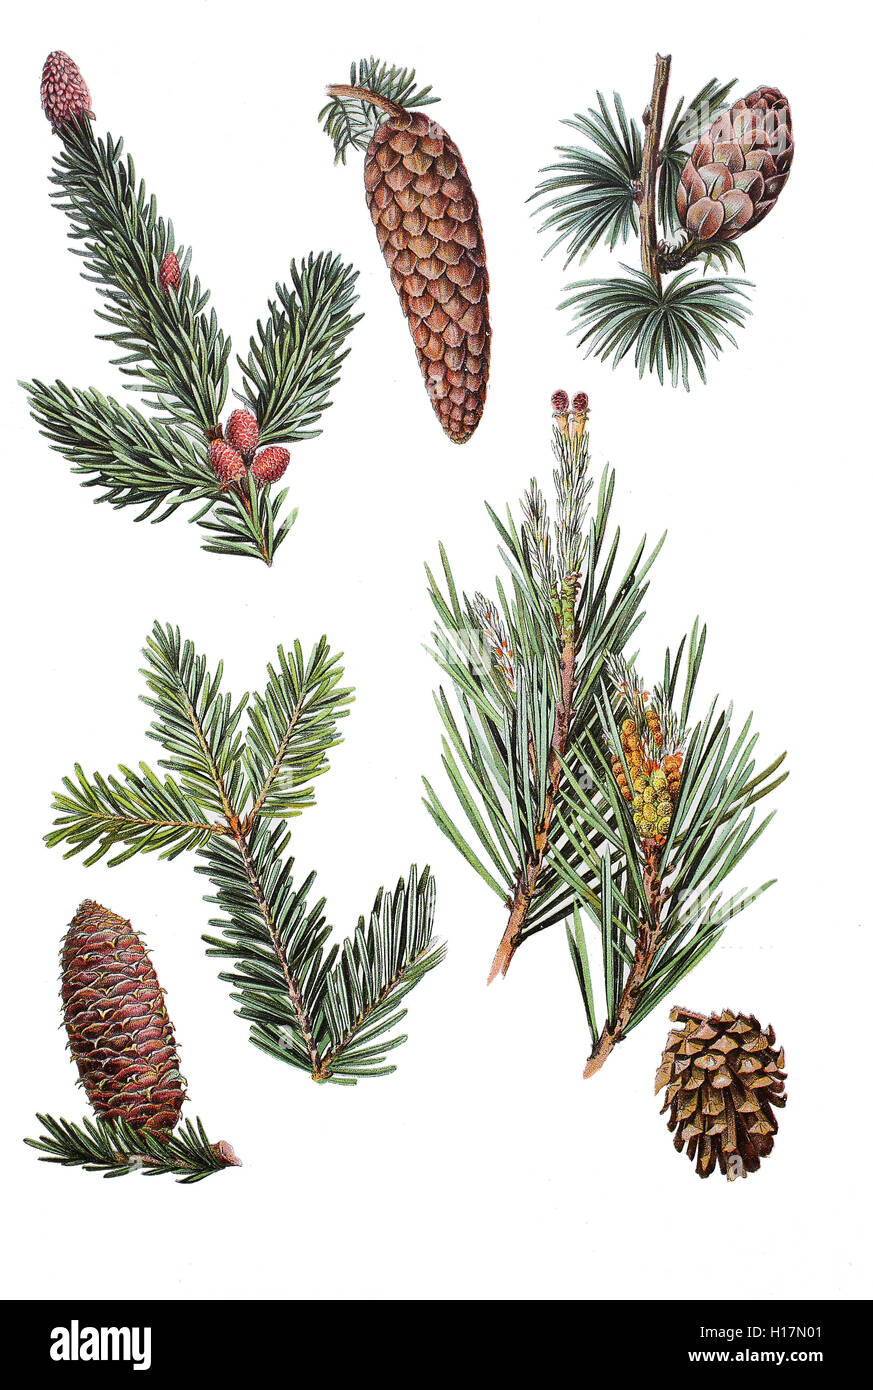 zweige und zapfen gemeine fichte picea abies oben links stock photo 121257361 alamy. Black Bedroom Furniture Sets. Home Design Ideas